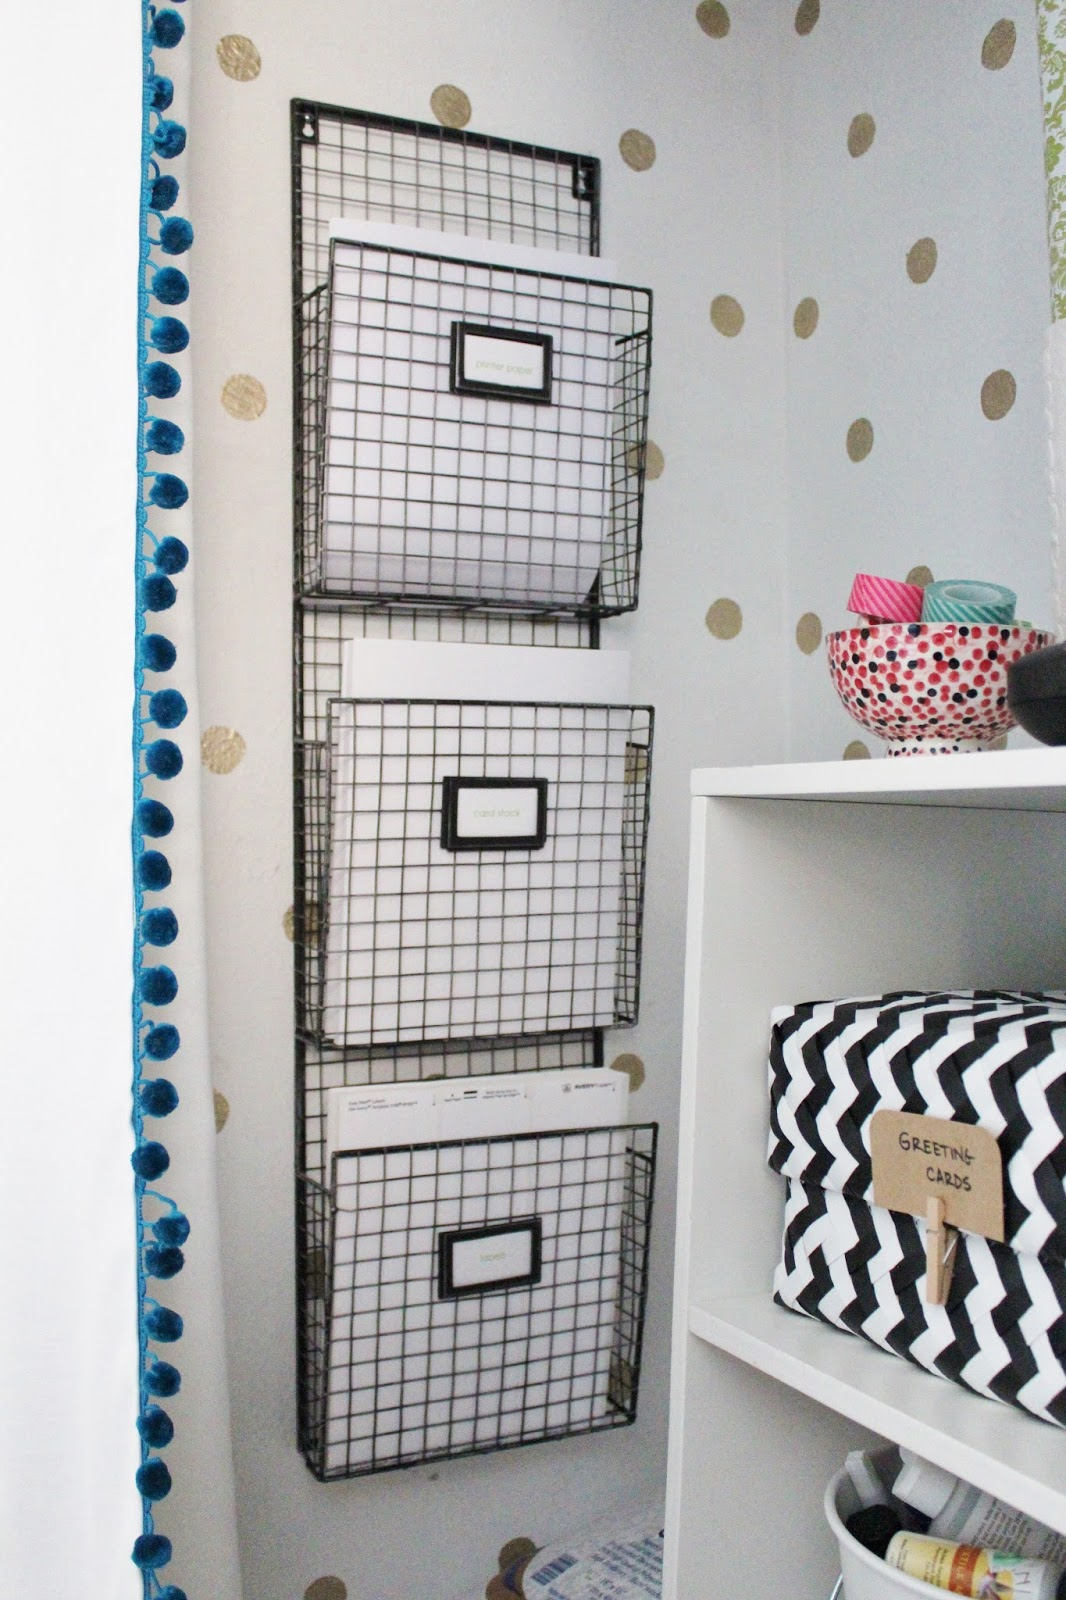 Office shelves wire baskets : Office paper storage organization